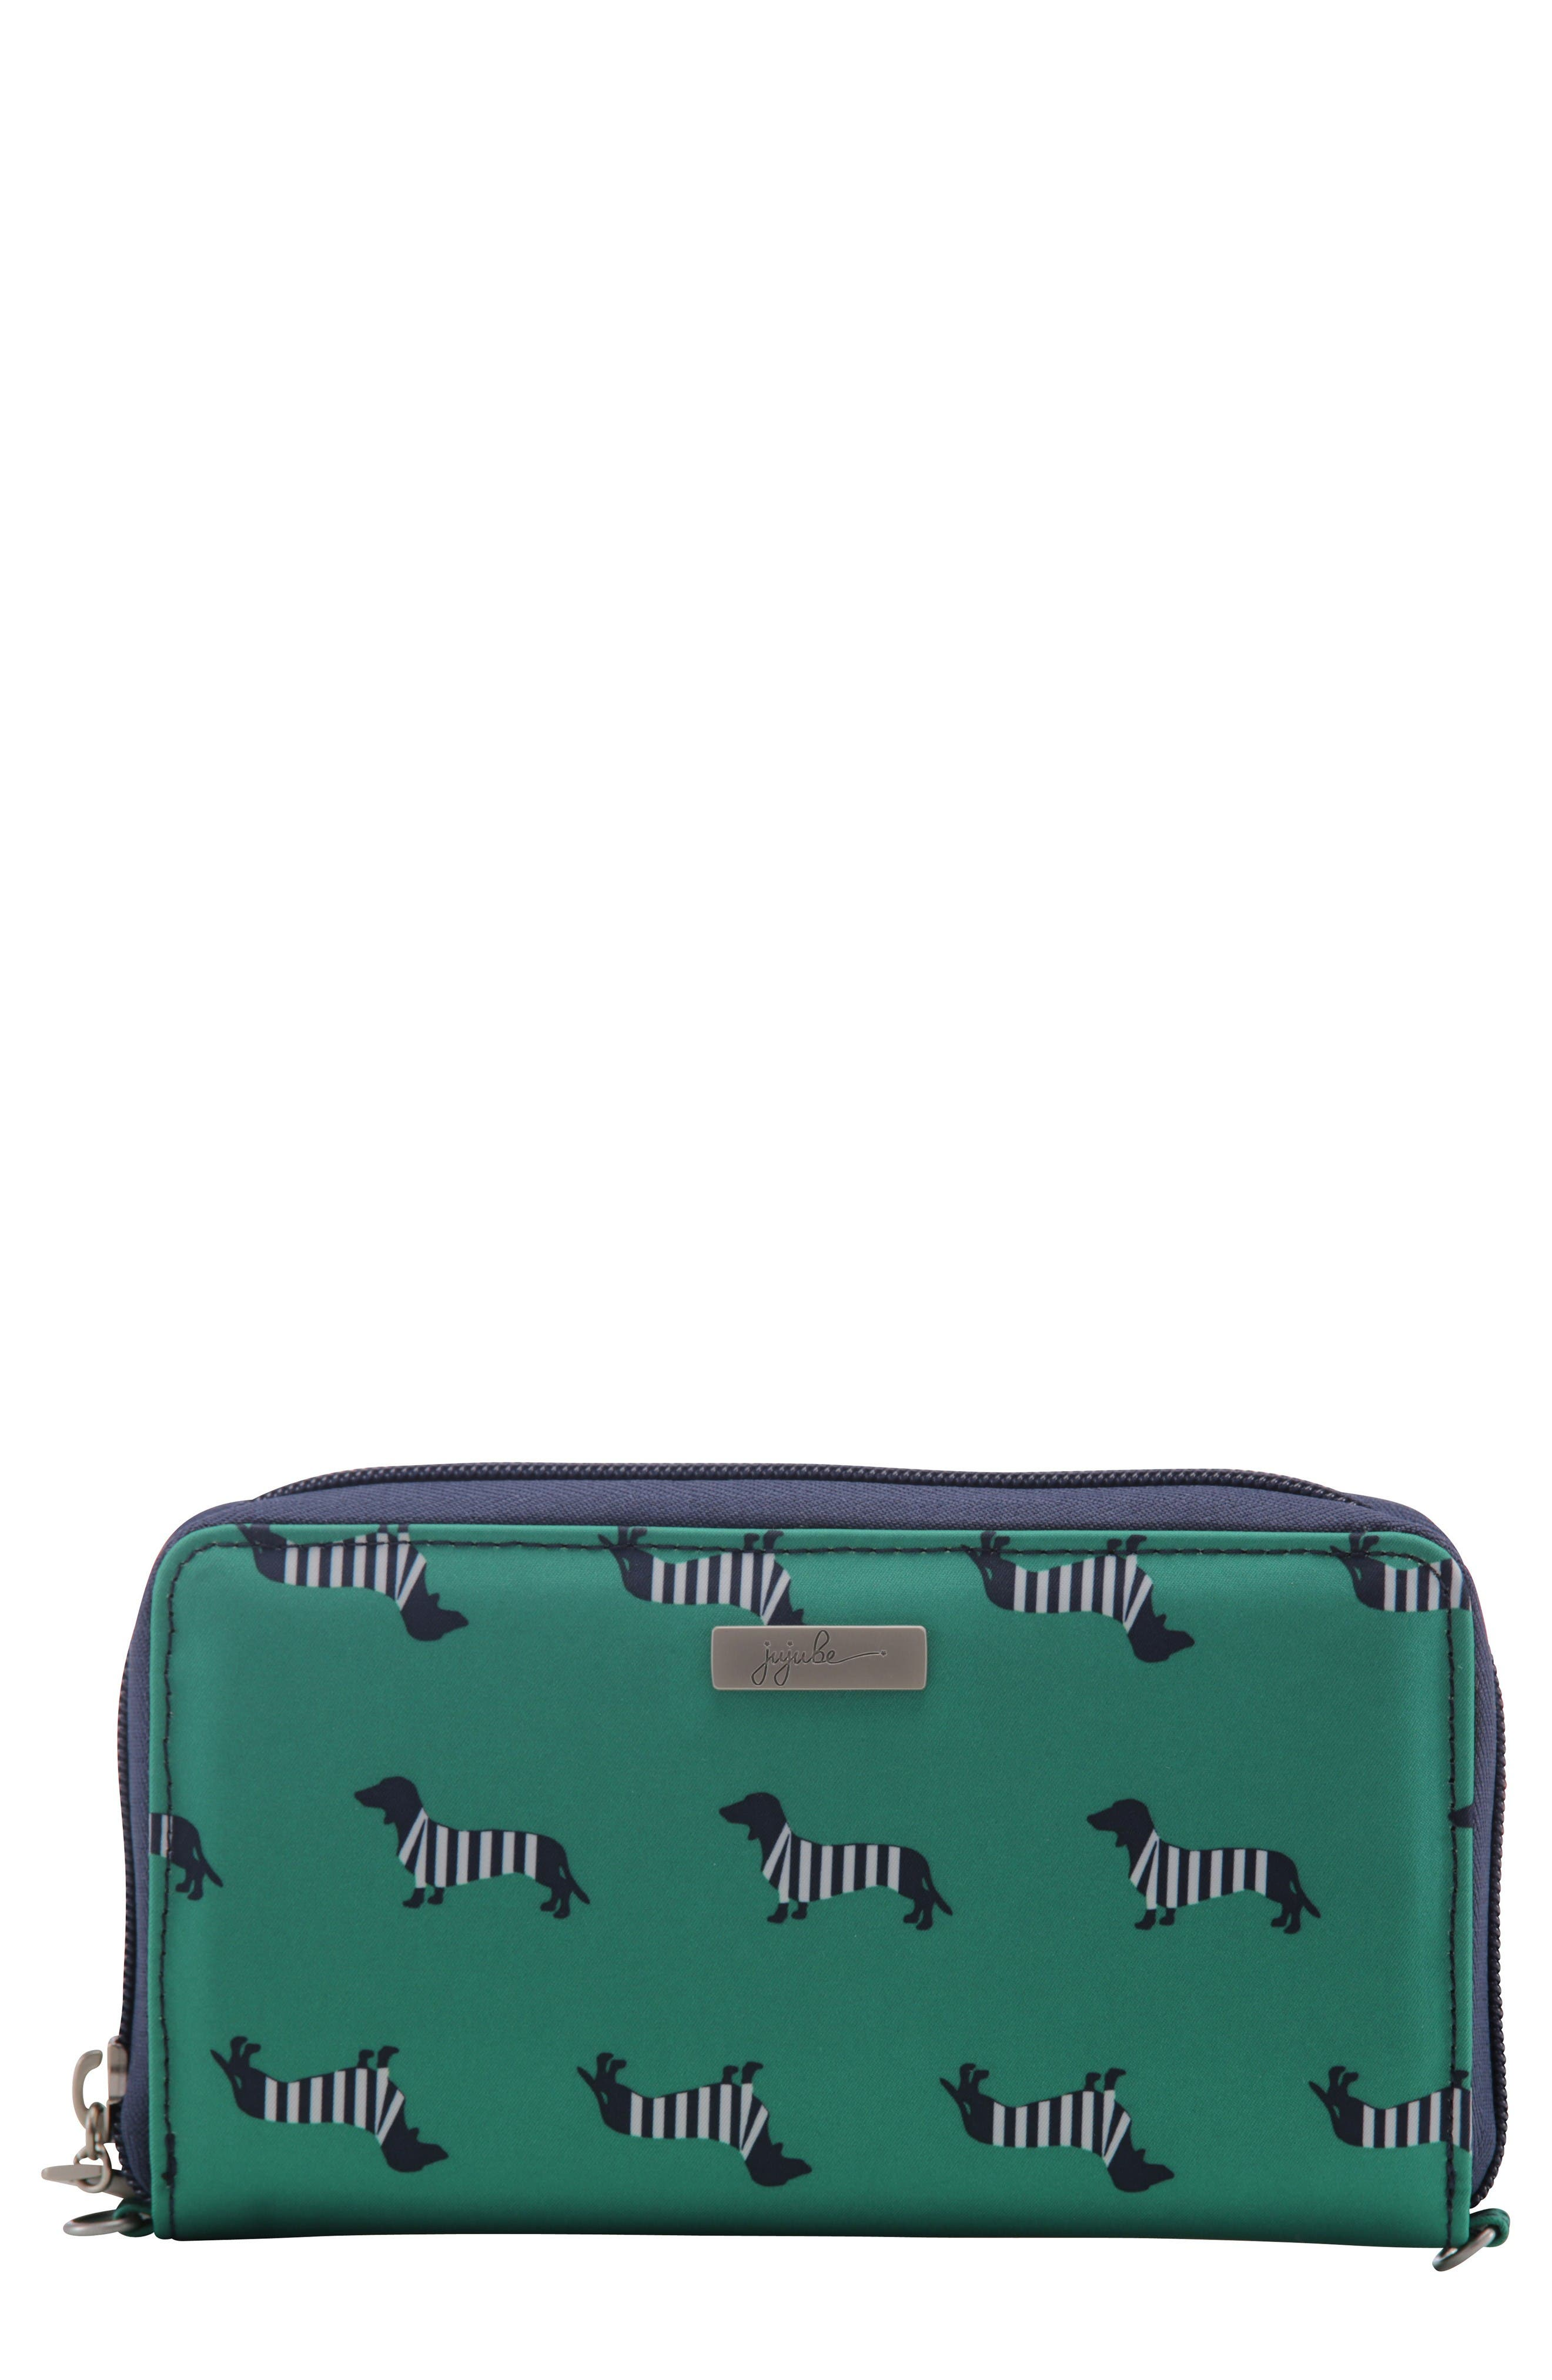 Be Spendy - Coastal Collection Clutch Wallet,                         Main,                         color, Coney Island